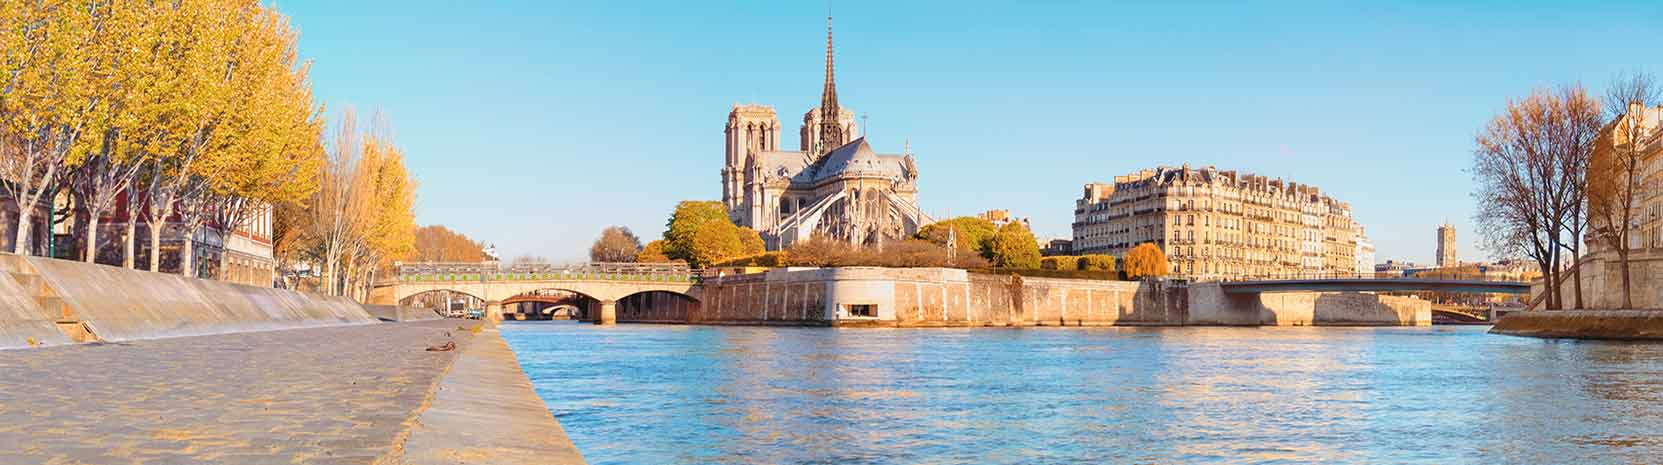 will parisians be swimming in the river seine soon lodgis blog